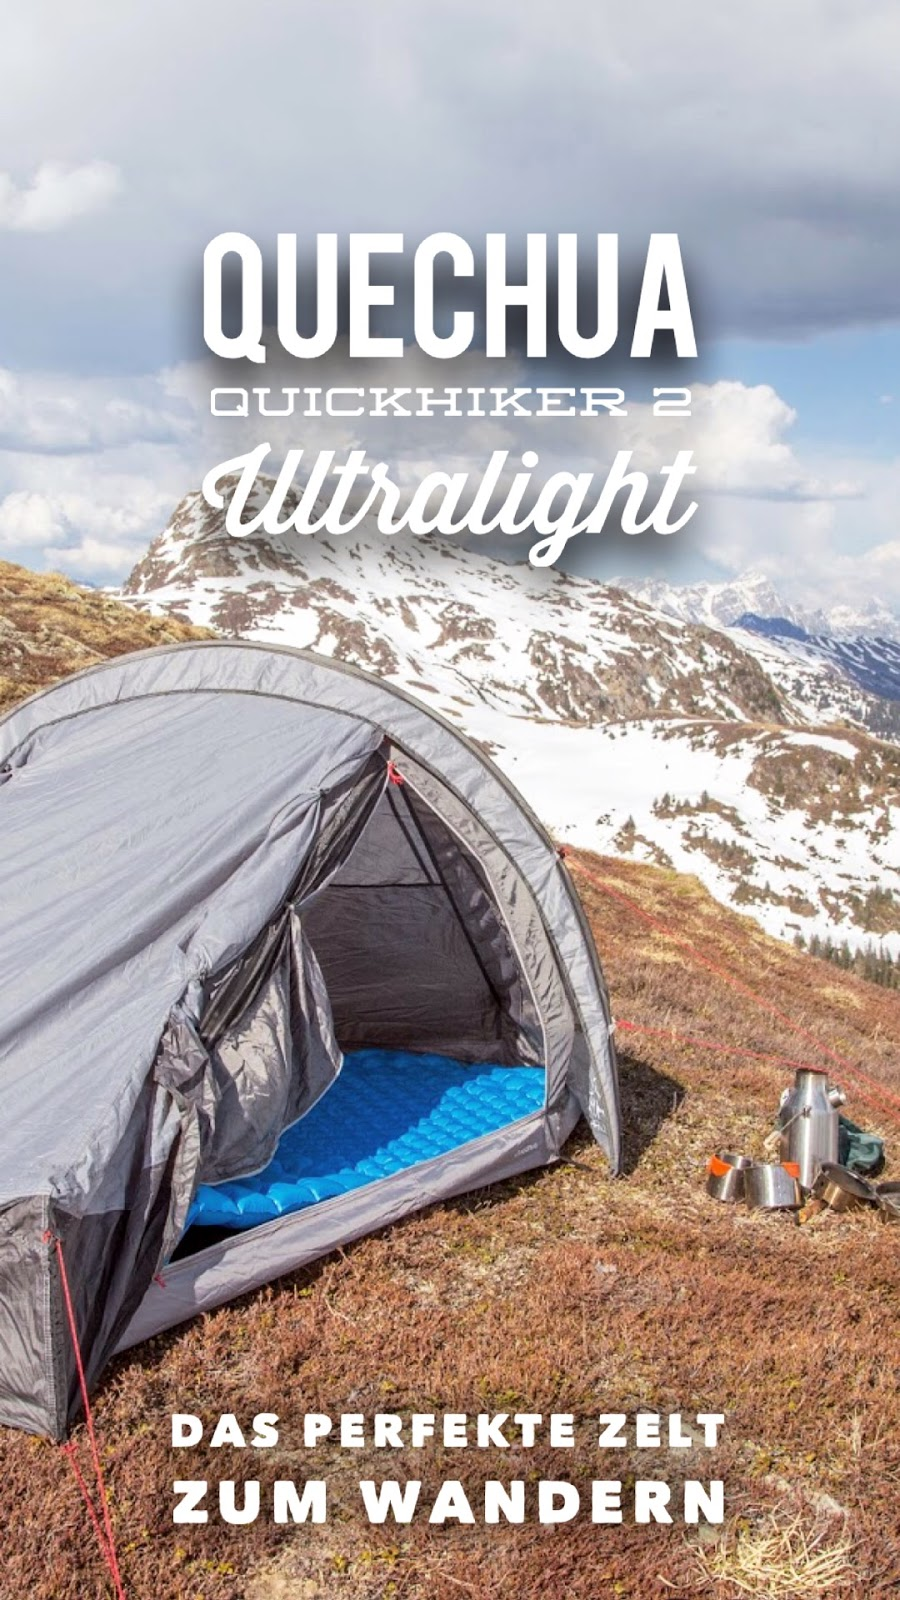 quechua quickhiker 2 ultralight 2 personen zelt gear. Black Bedroom Furniture Sets. Home Design Ideas